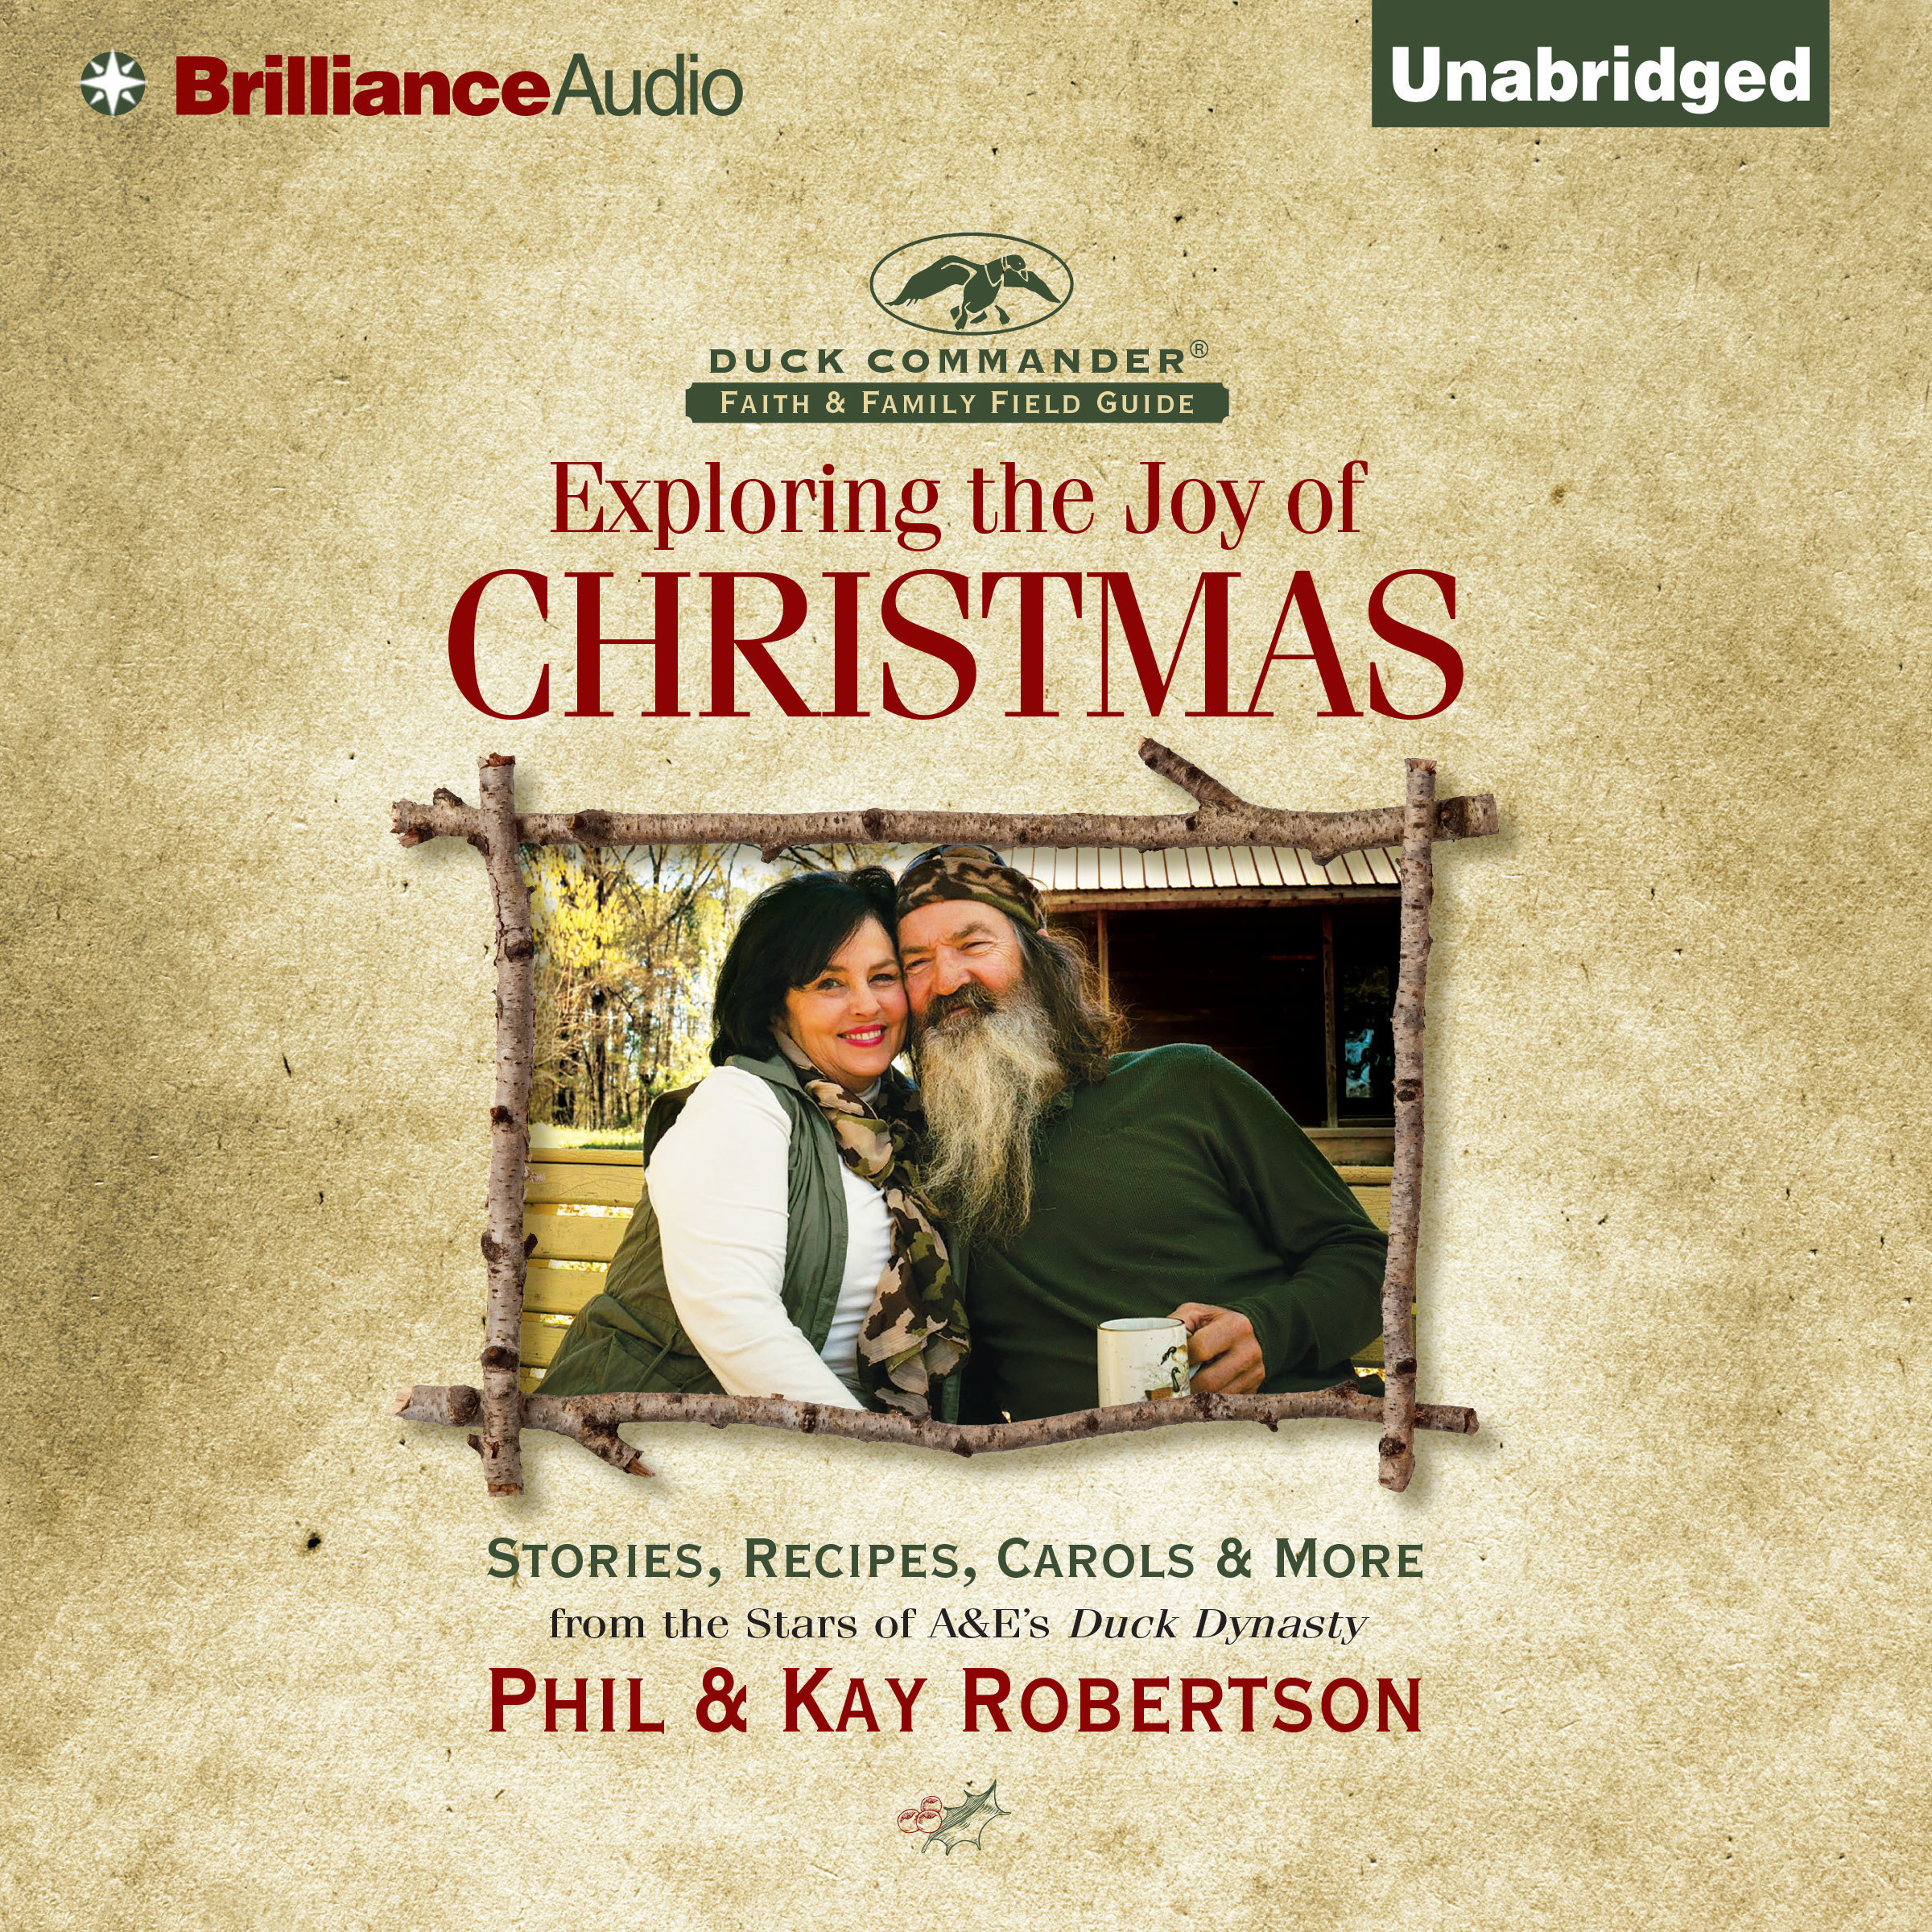 Printable Exploring the Joy of Christmas: A Duck Commander Faith and Family Field Guide Audiobook Cover Art